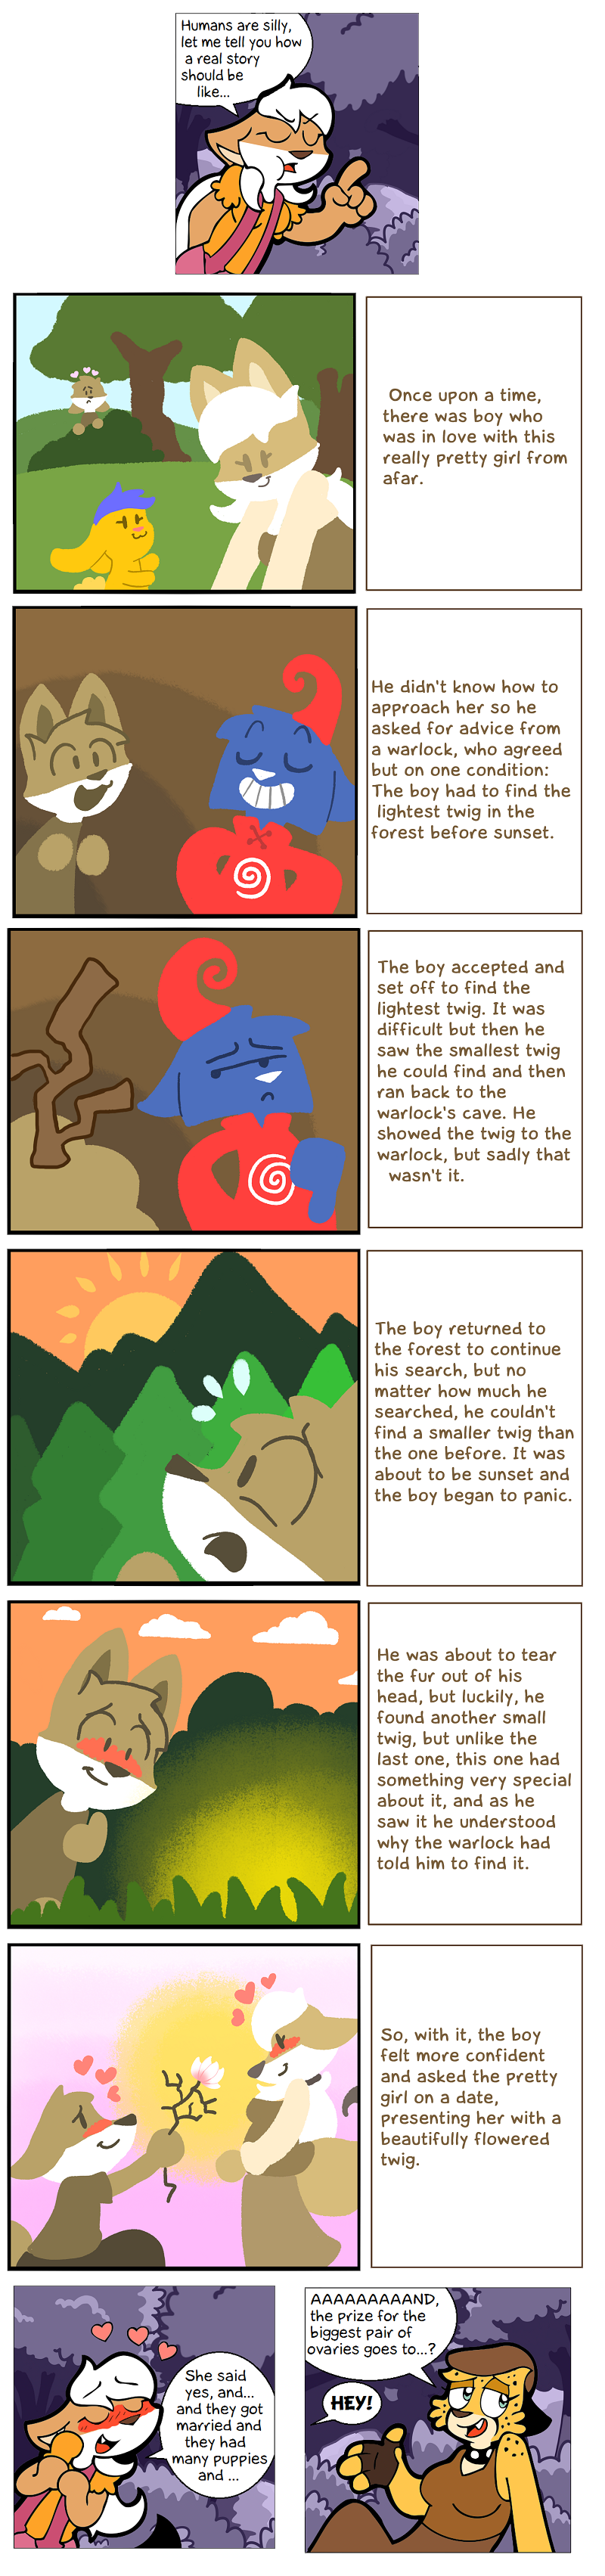 Pituka's bed time story